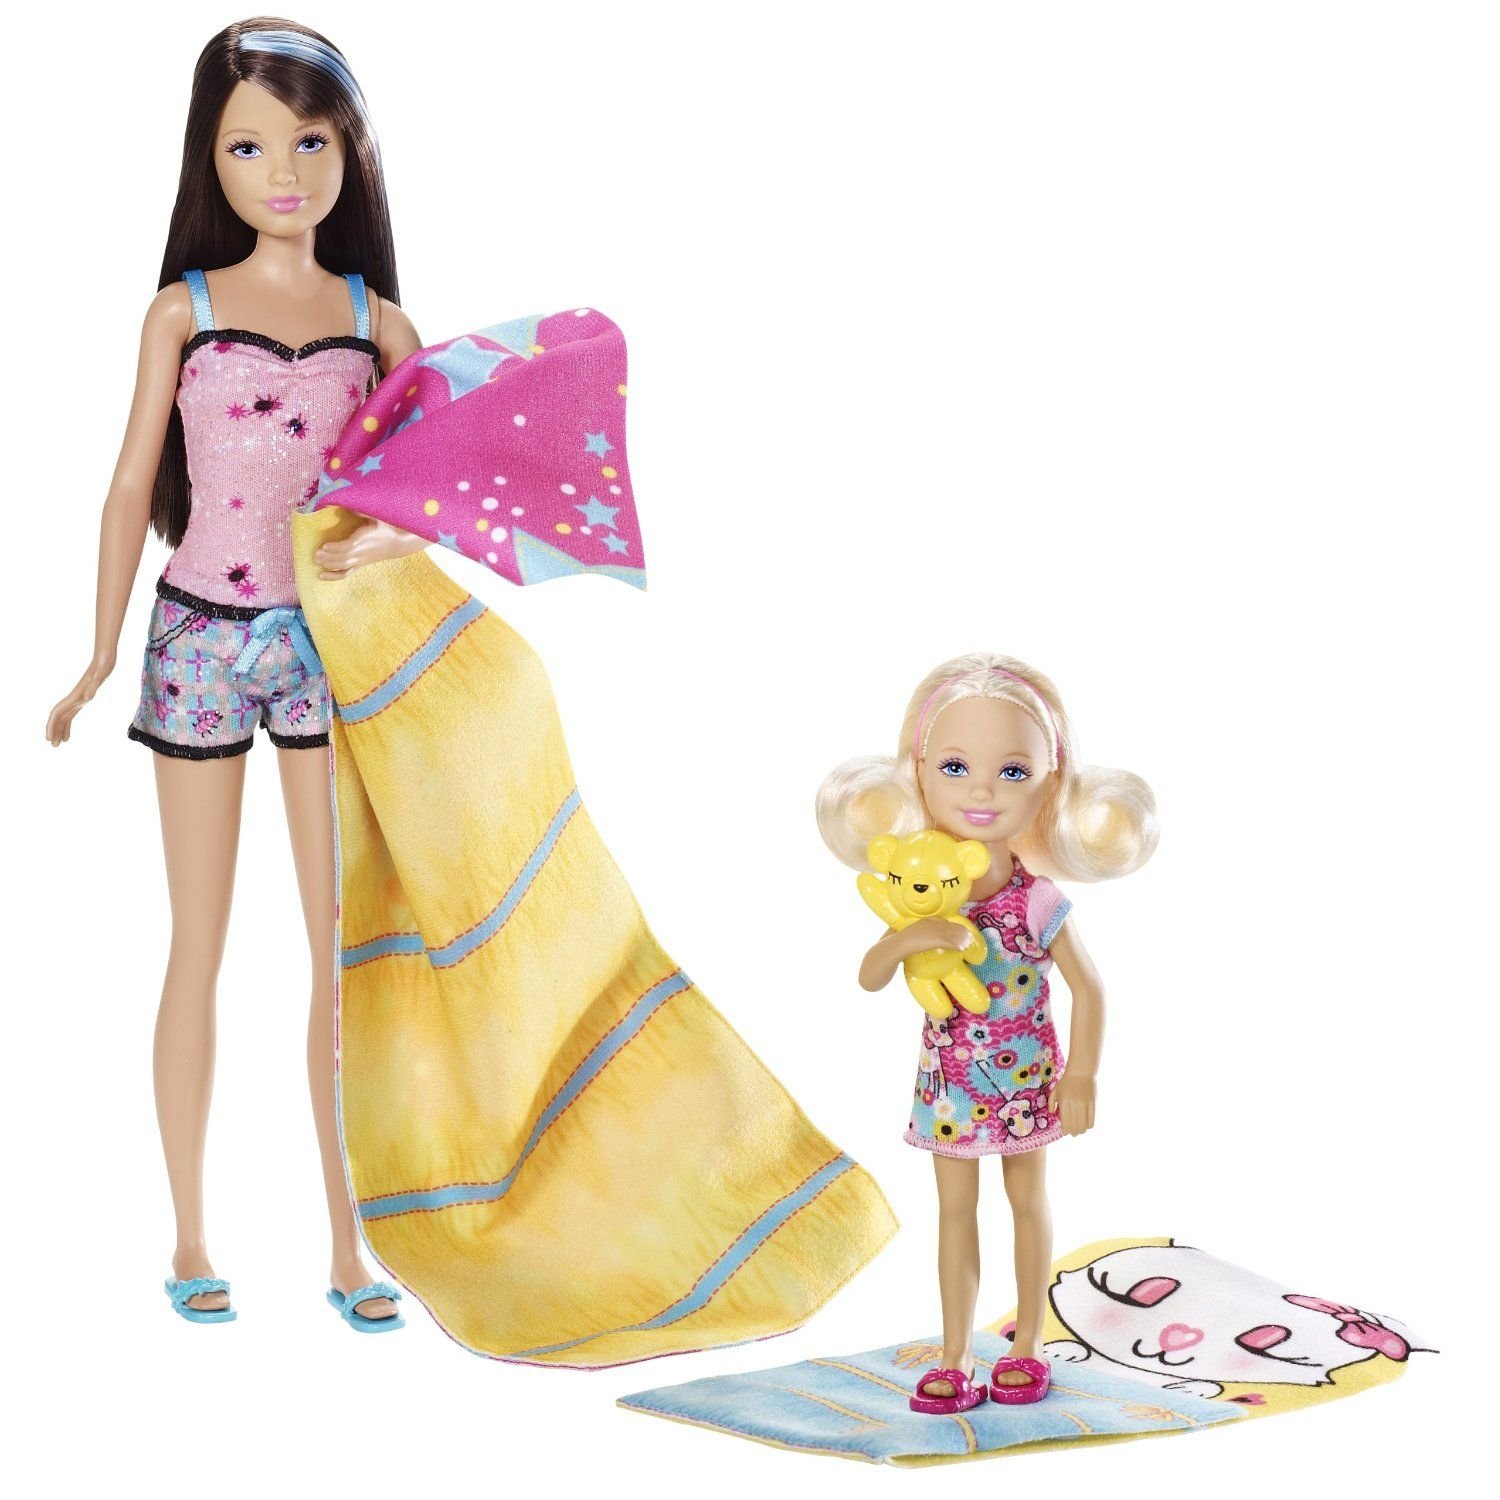 Amazon.com: Barbie Sisters Sleep Out Skipper And Chelsea Doll 2-Pack: Toys & Games